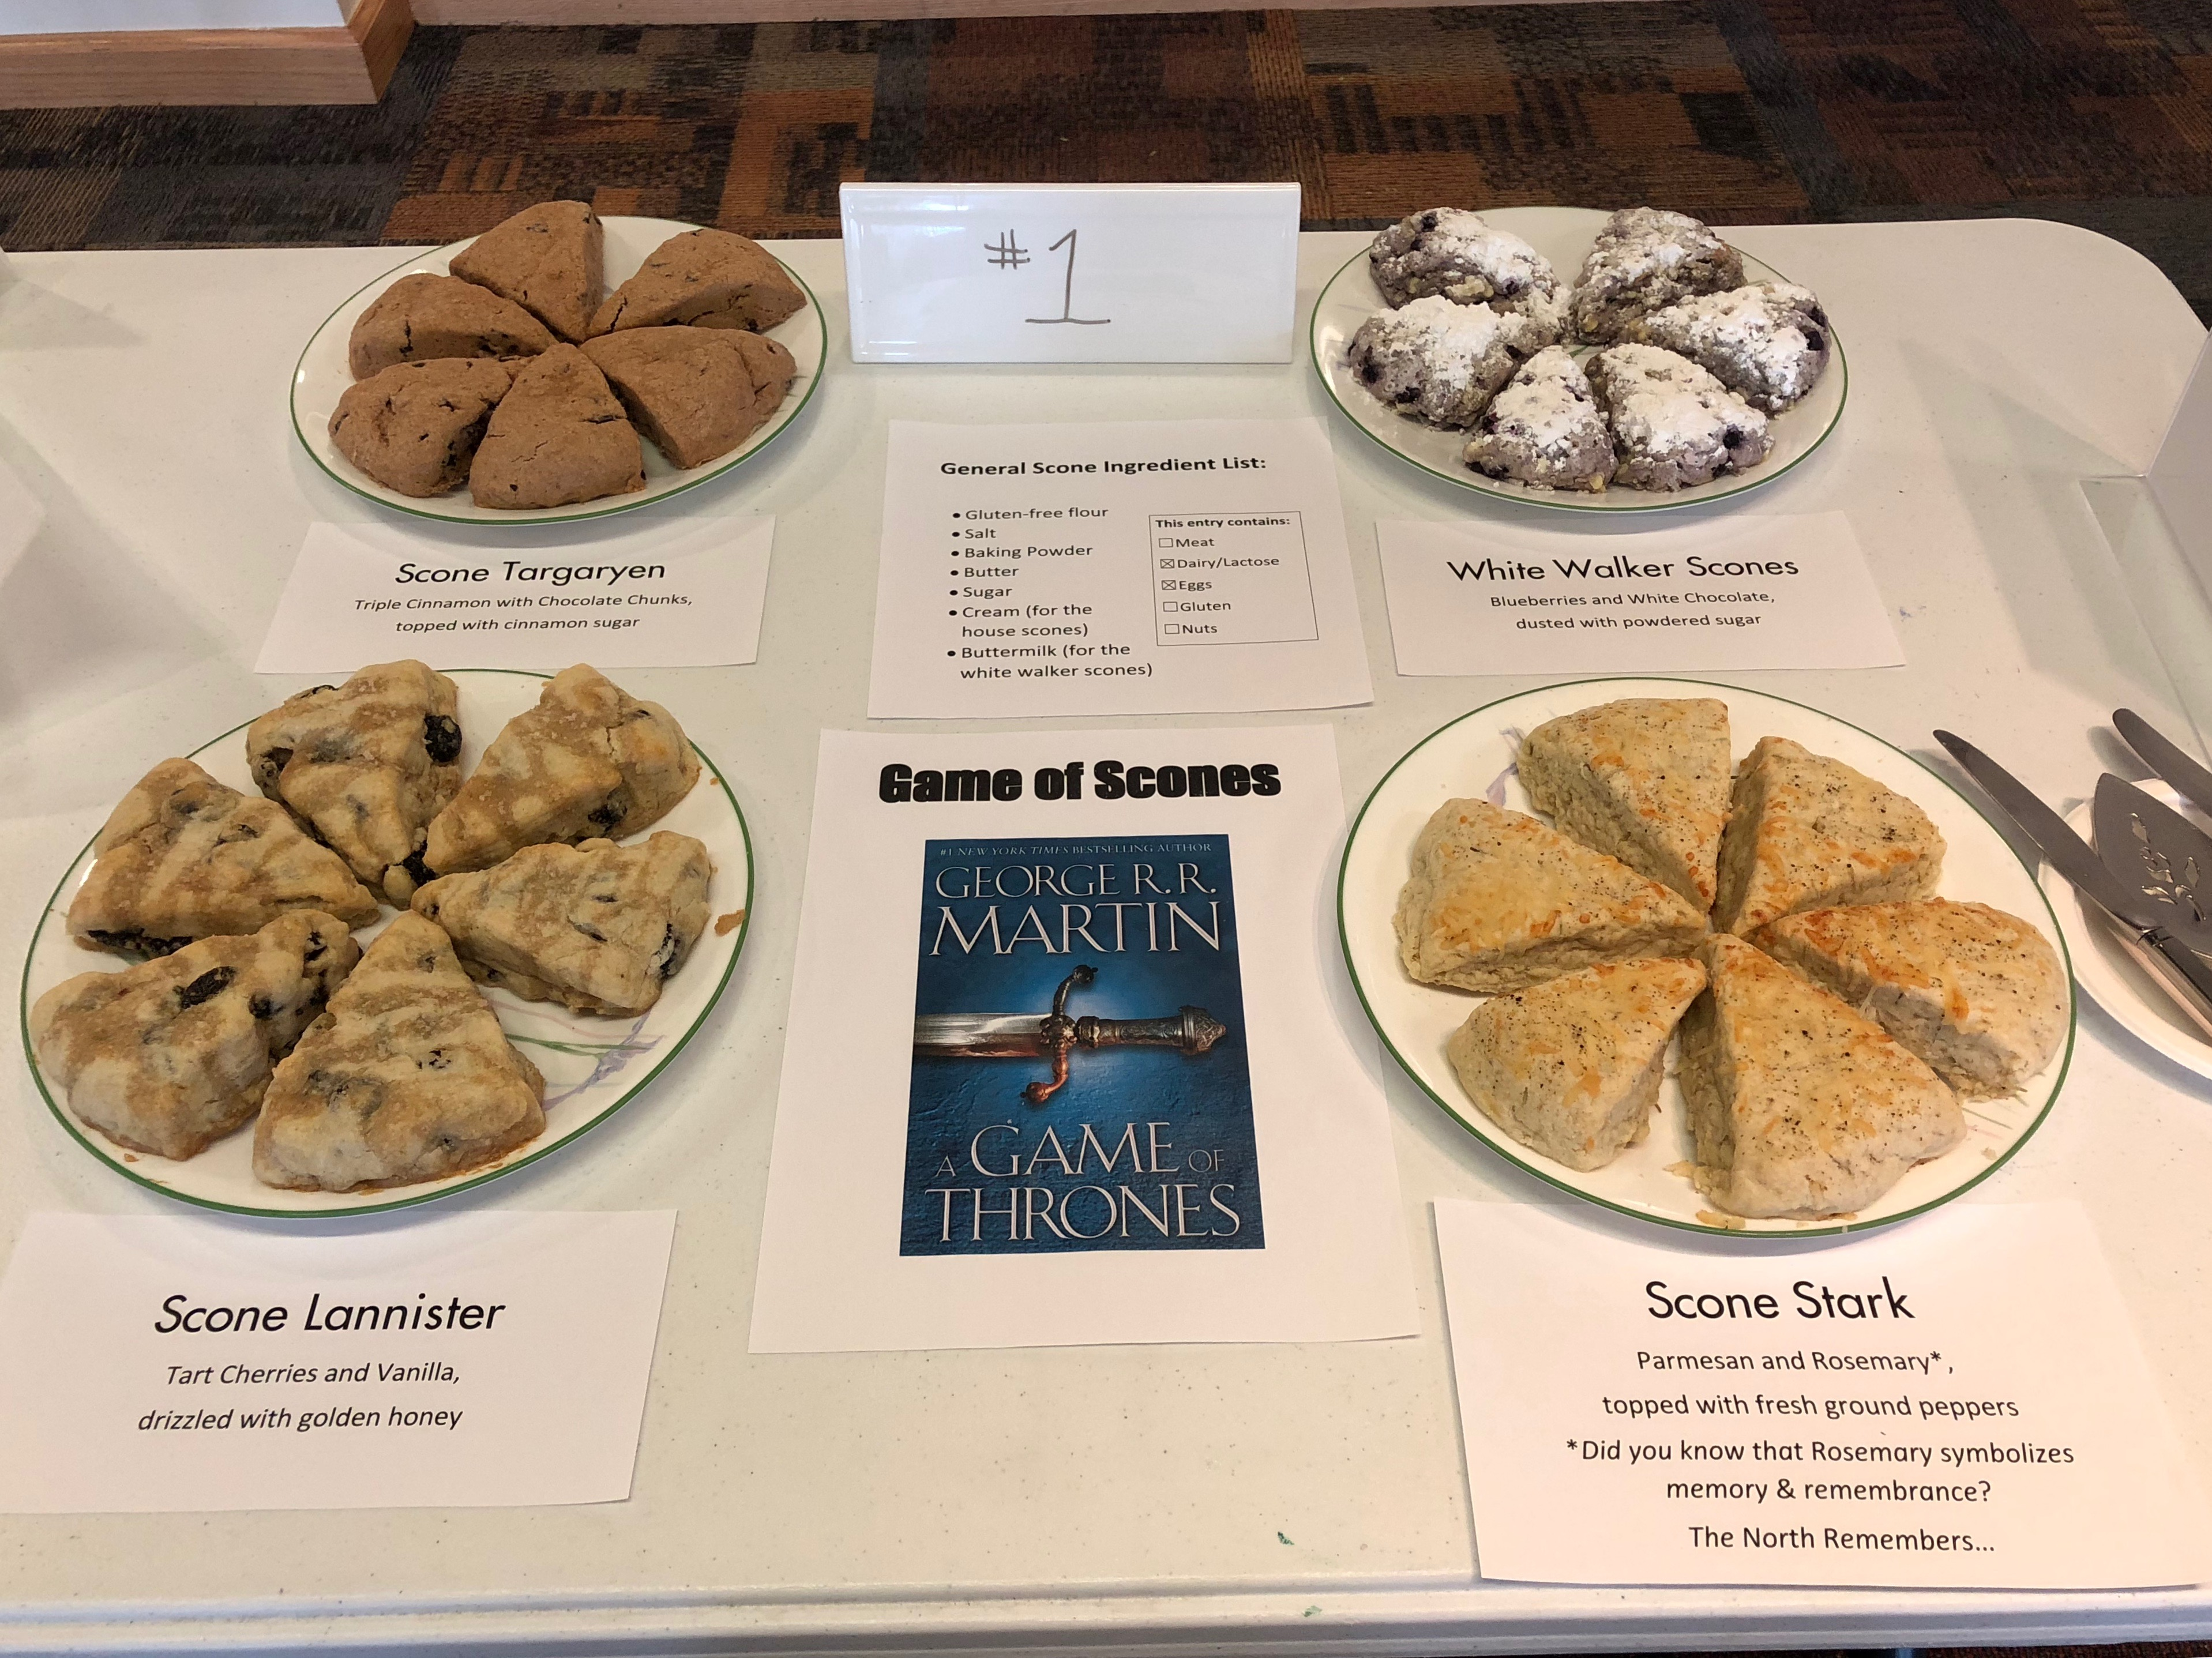 Scone Lannister (cherries, vanilla, & honey); Scone Targaryen (triple cinnamon with chocolate chunks); Scone Stark (parmesan and rosemary); and White Walker Scones (blueberry and white chocolate) compete for the throne in this tribute to Game of Thrones.